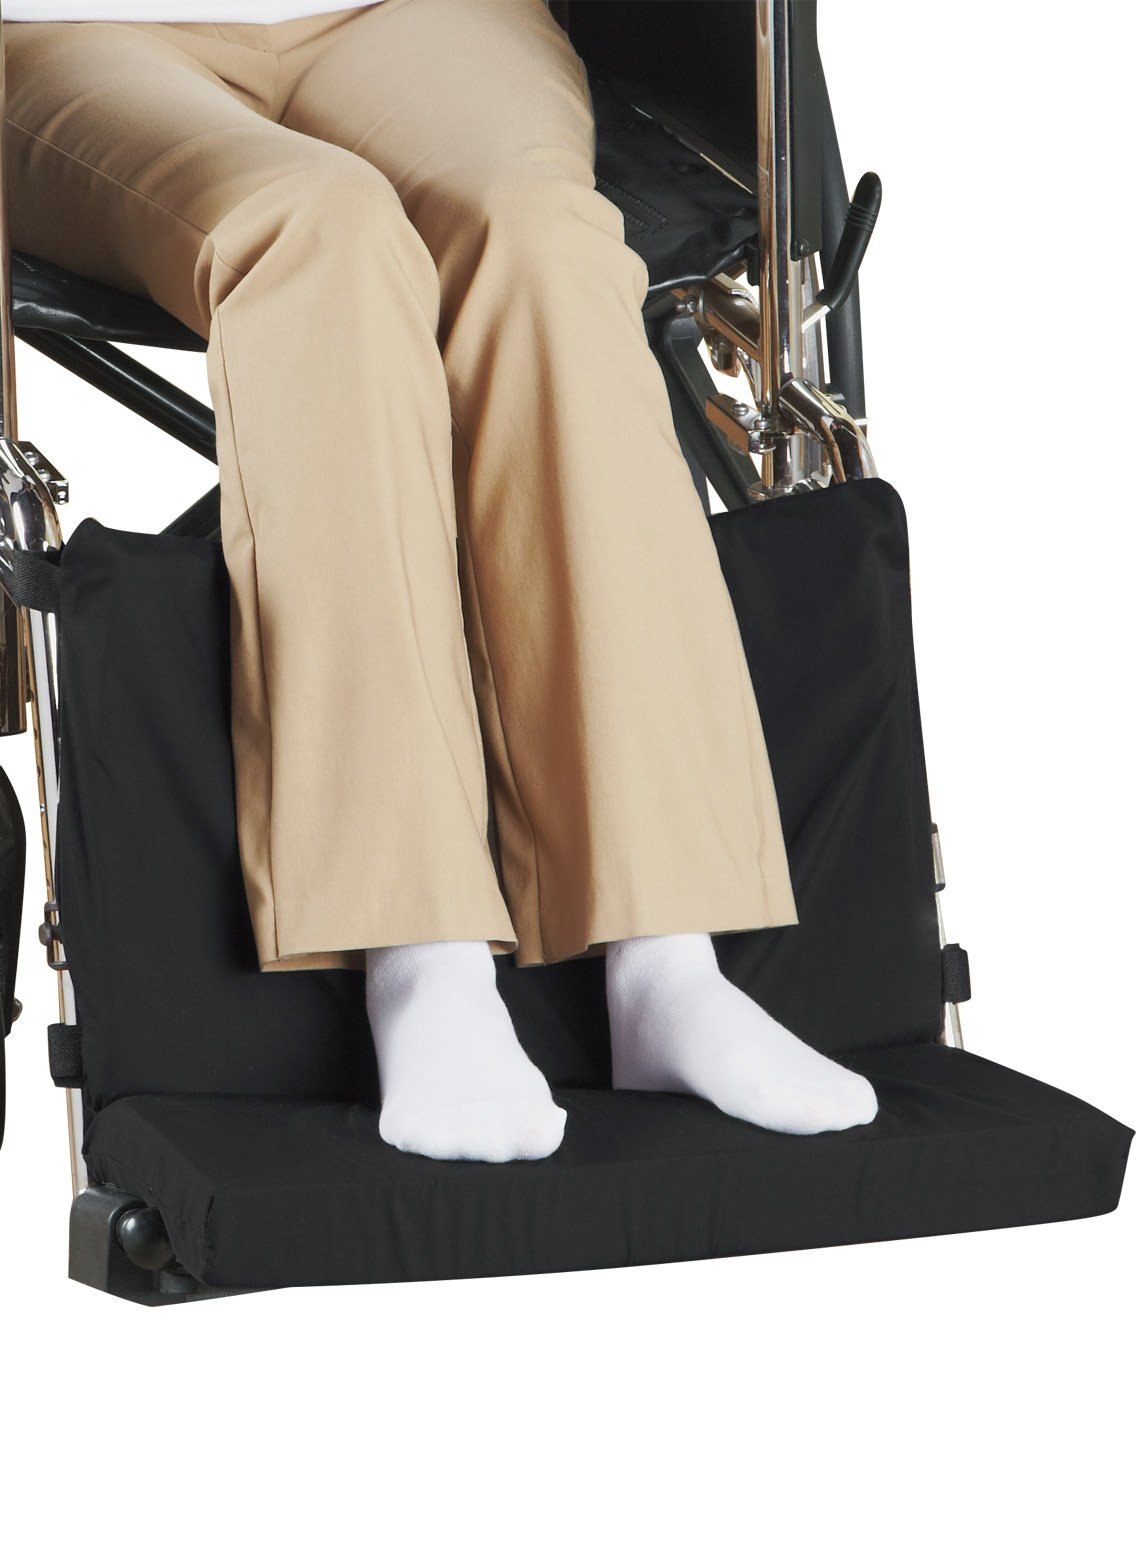 Wheelchair Leg and Foot Support